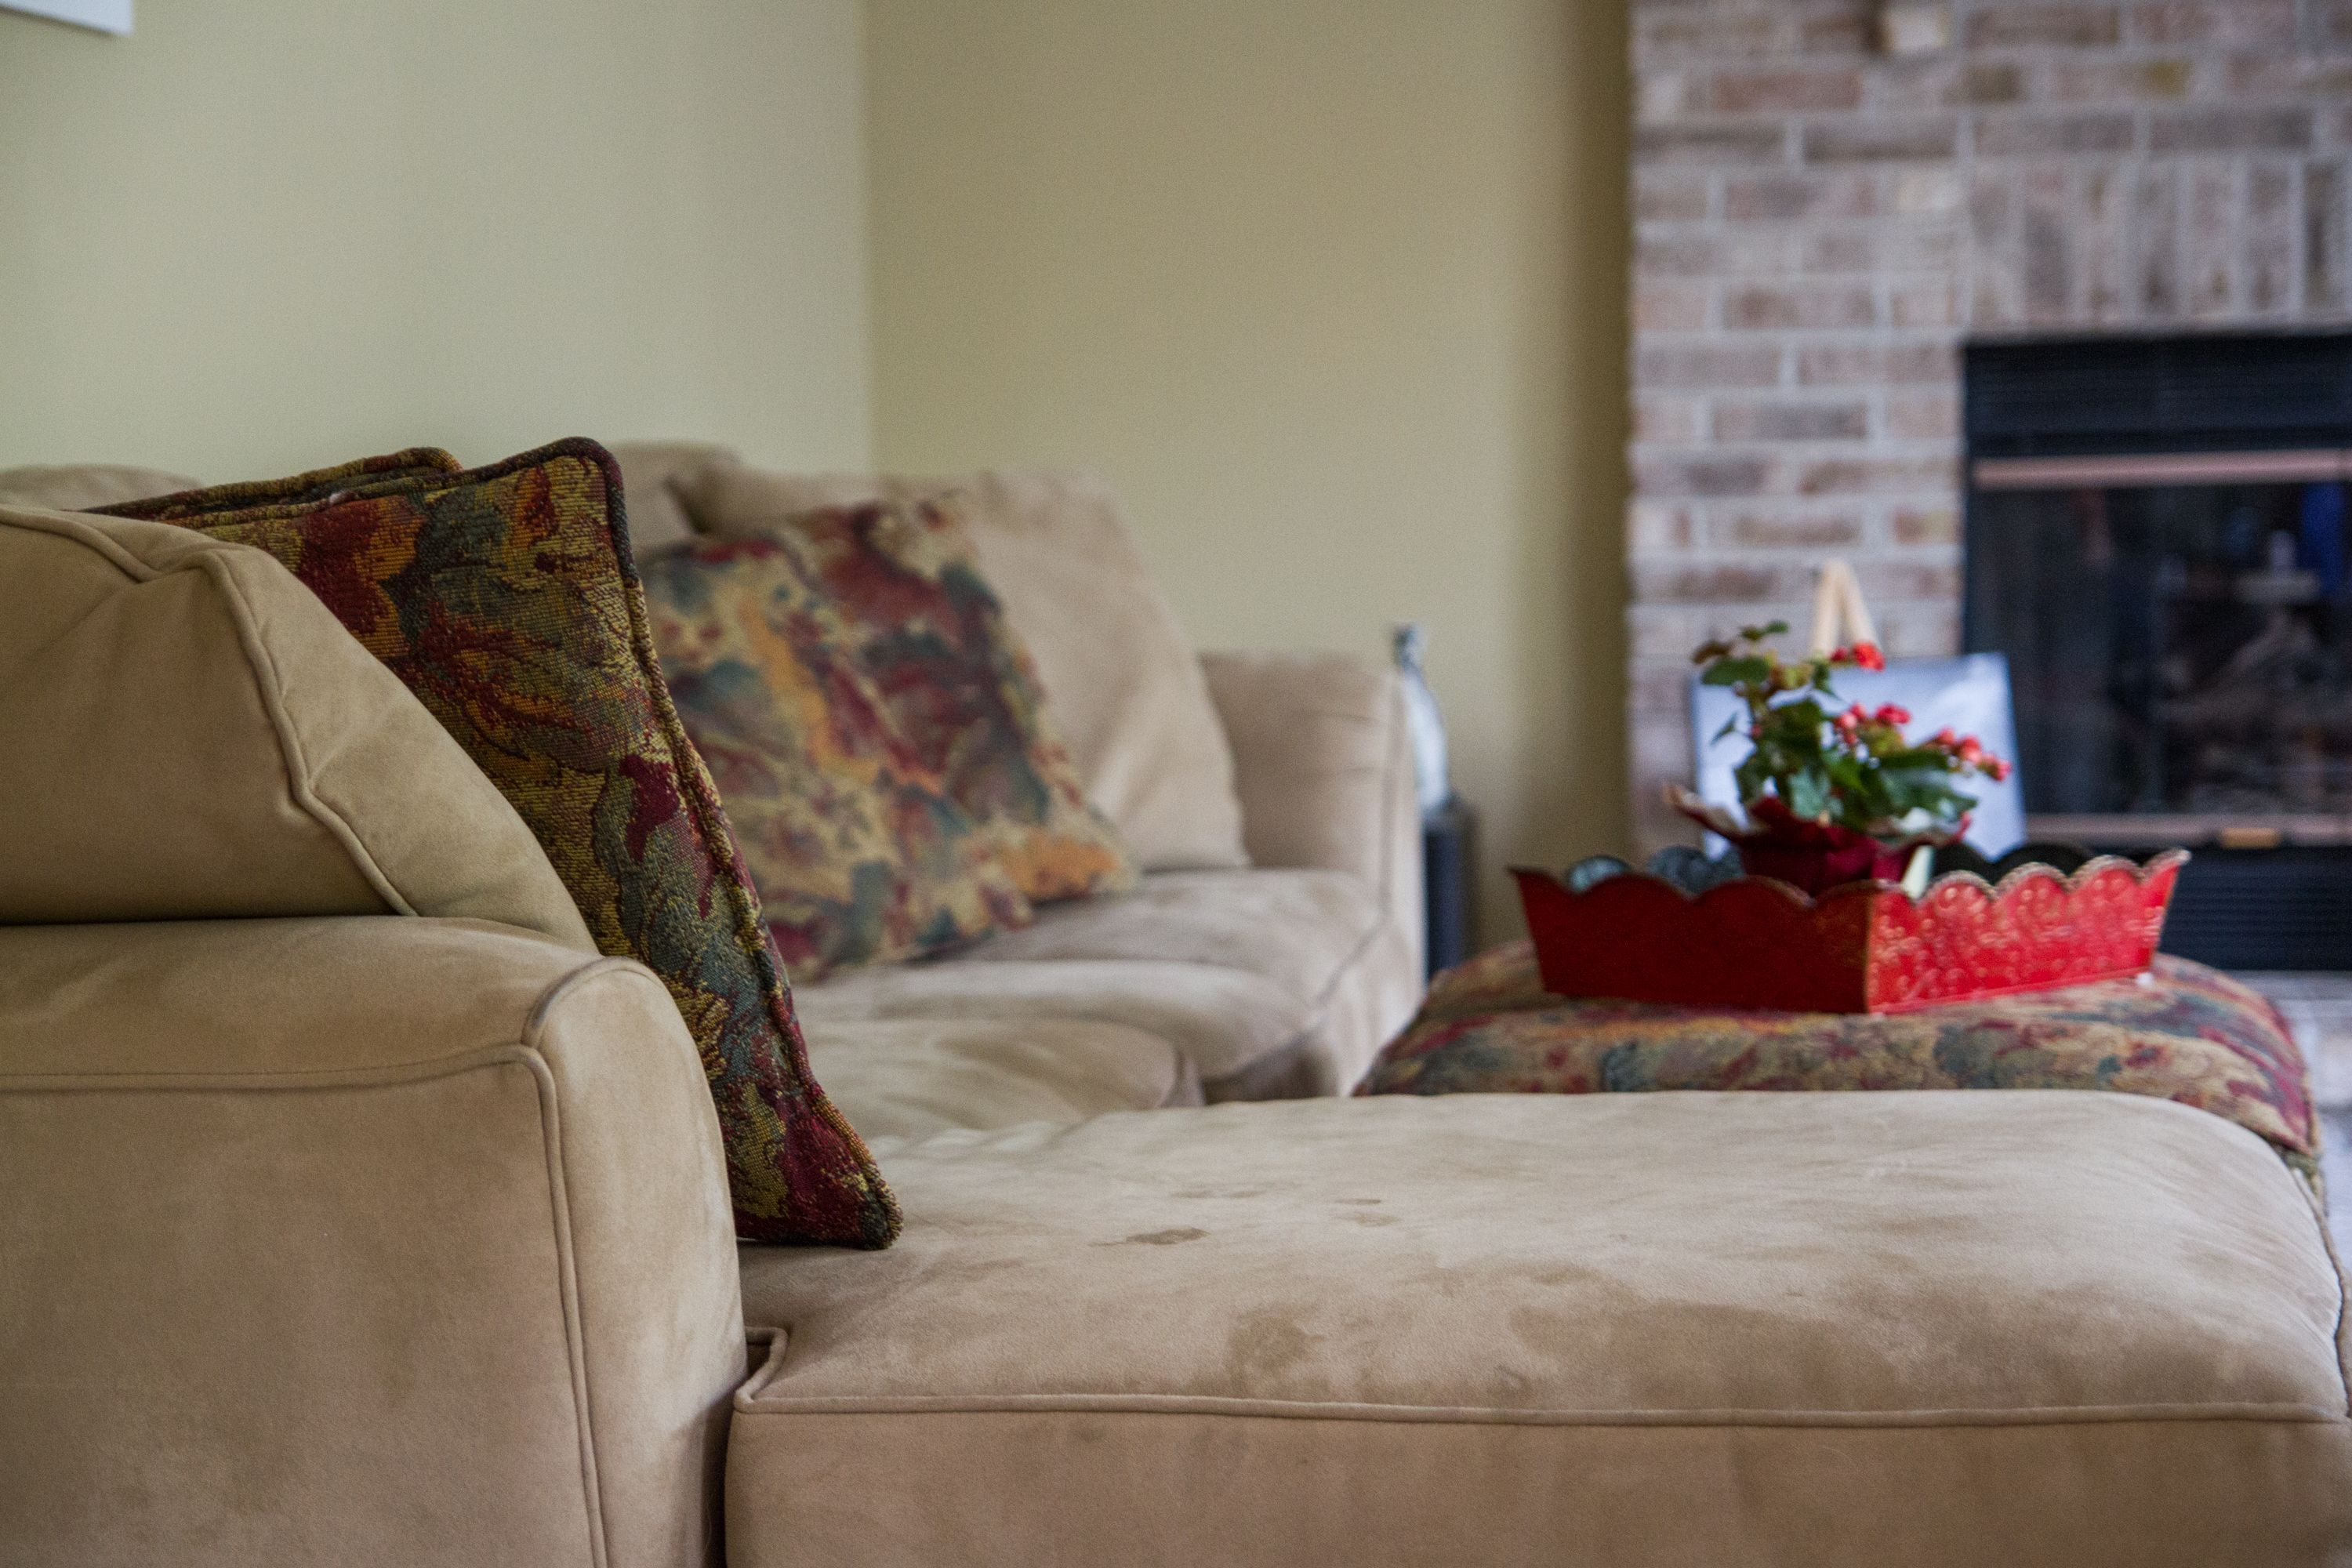 How to Get a Water Stain Out of a Microfiber Couch